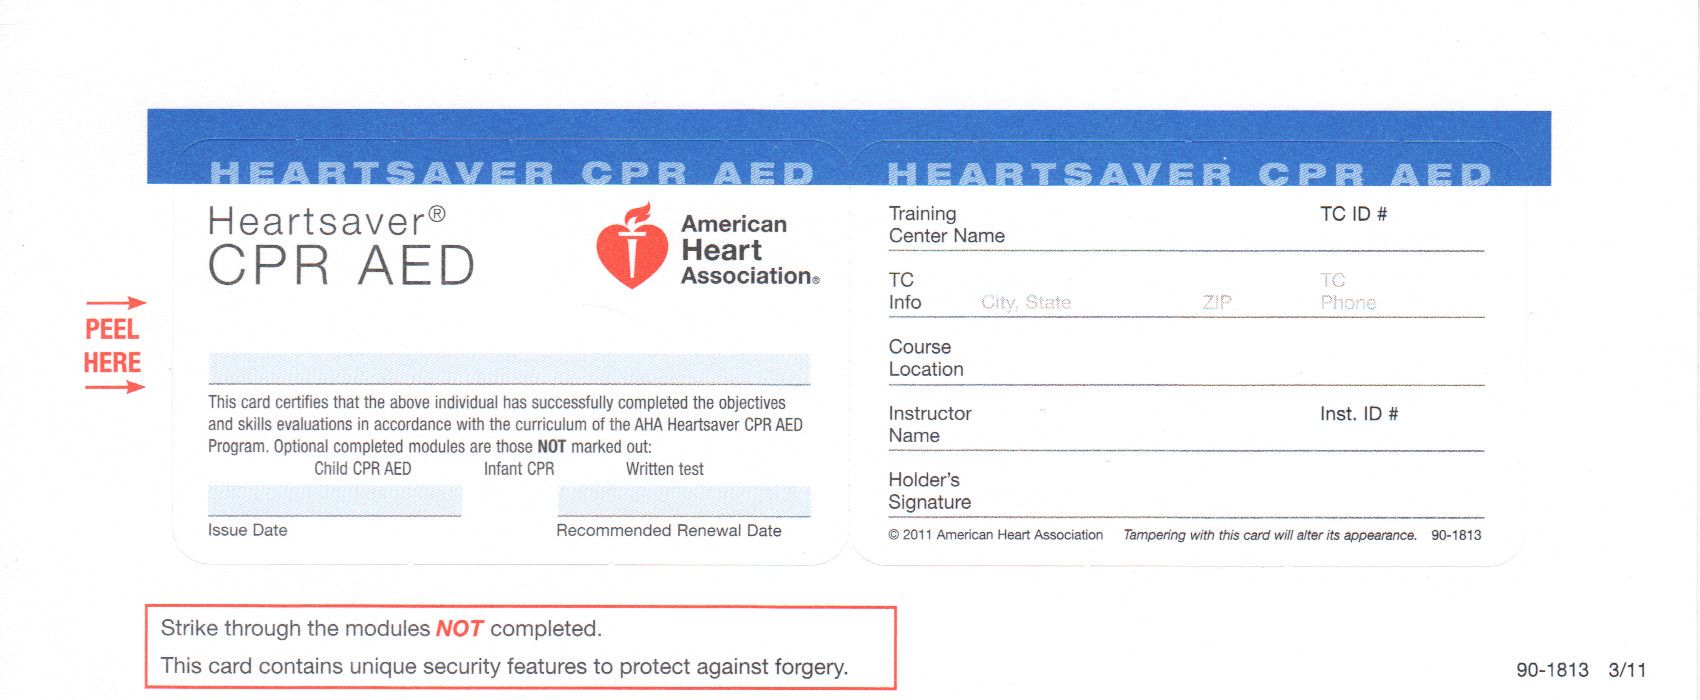 27 Images Of Bls Blank Template Zeept Throughout Cpr Card Template Cumed Org Cpr Card Card Template Cards